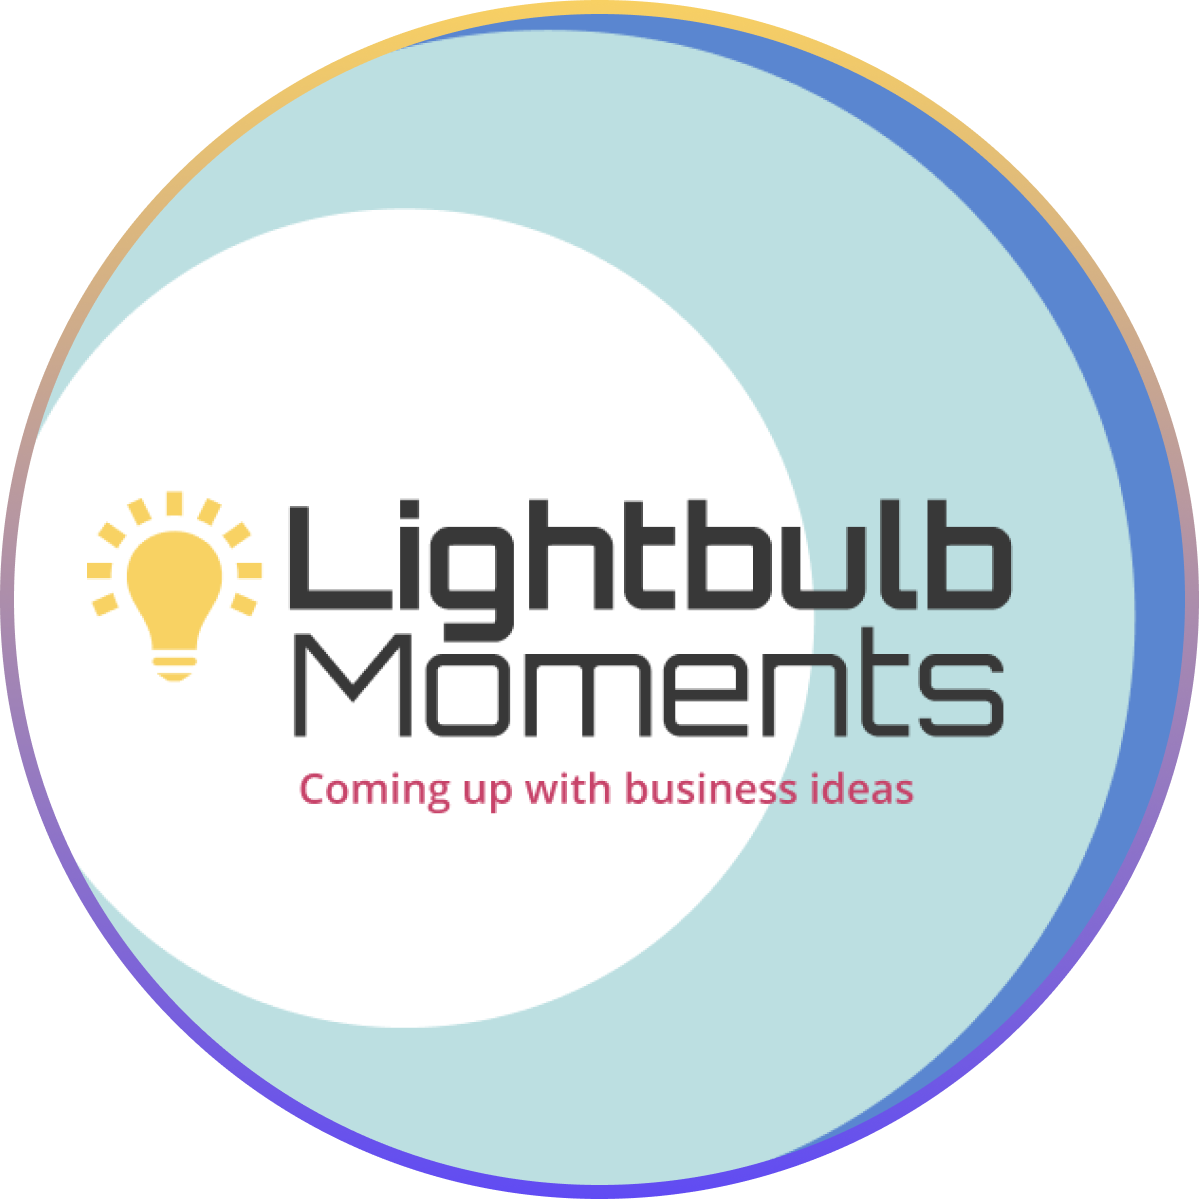 Lightbulb Moments - Coming up with business ideas event graphics